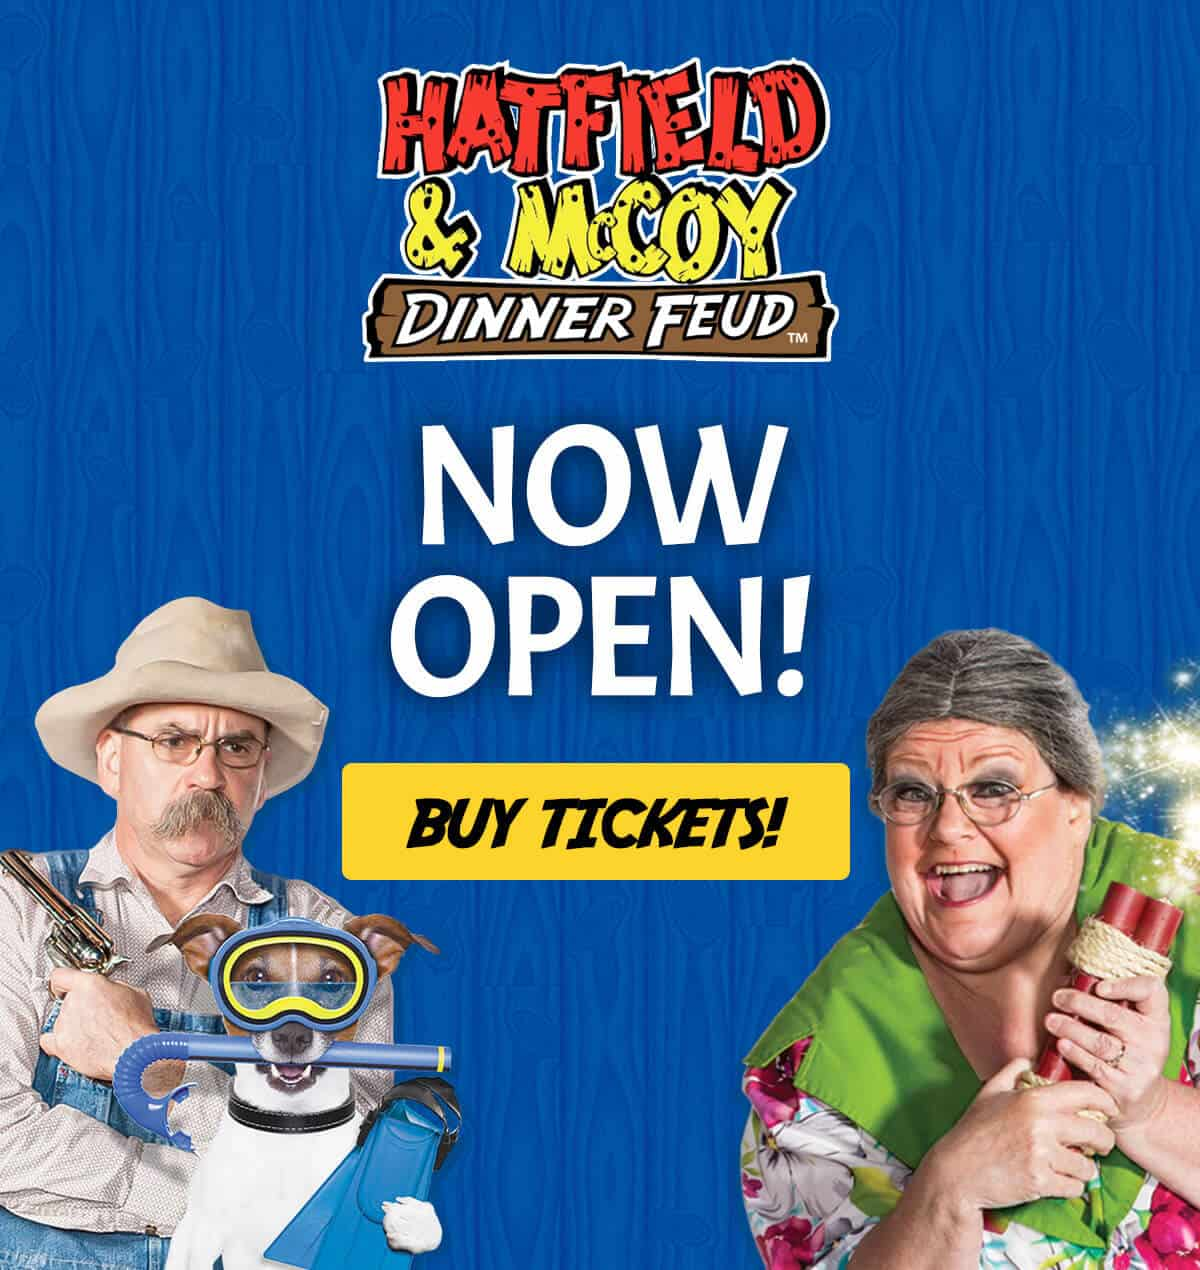 Hatfield & McCoy Dinner Feud is Now Open!